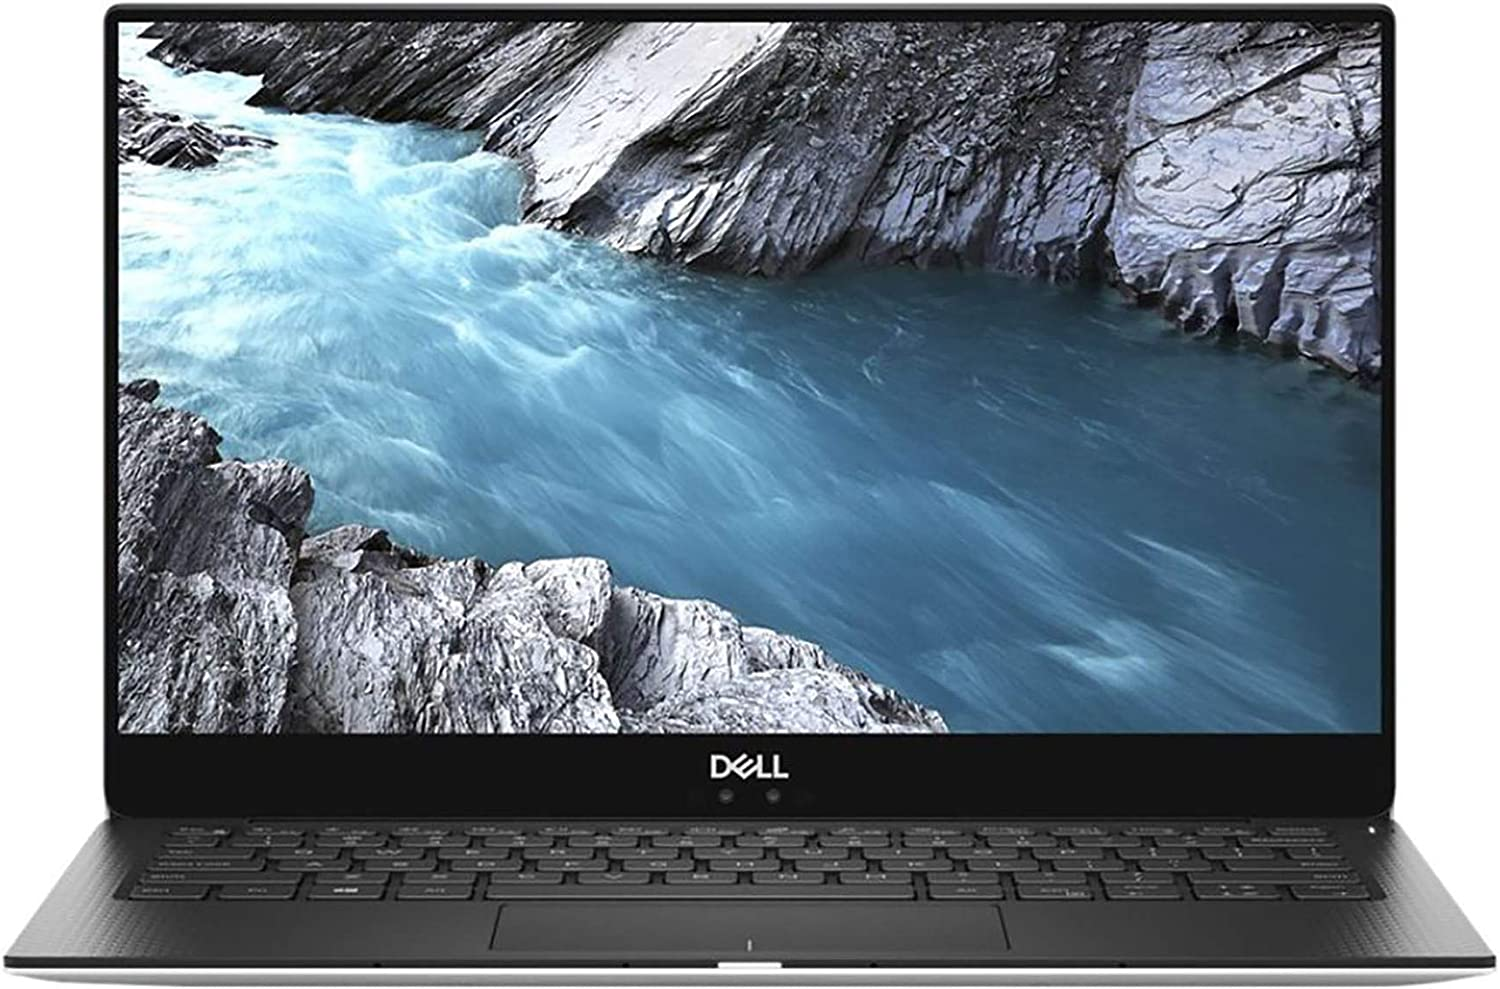 "Dell XPS 9370 3840 x 2160 Touchscreen LCD Laptop with Intel Core i7-8550U Quad-Core 1.8 GHz, 8GB RAM, 256GB SSD, 13.3"" (FJ7FF)"